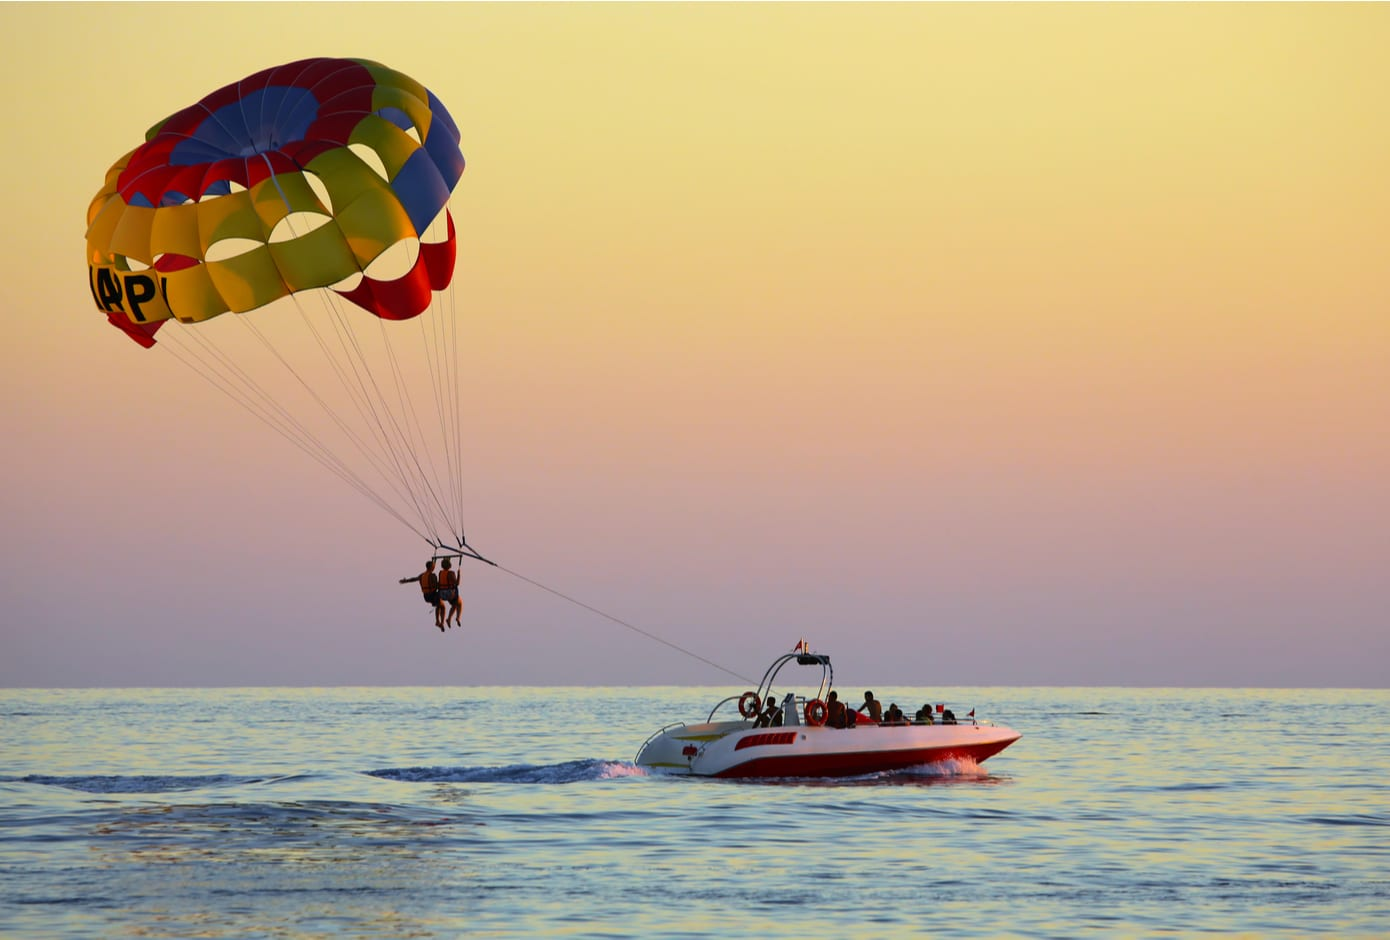 Two people parasailing above the ocean at sunset.